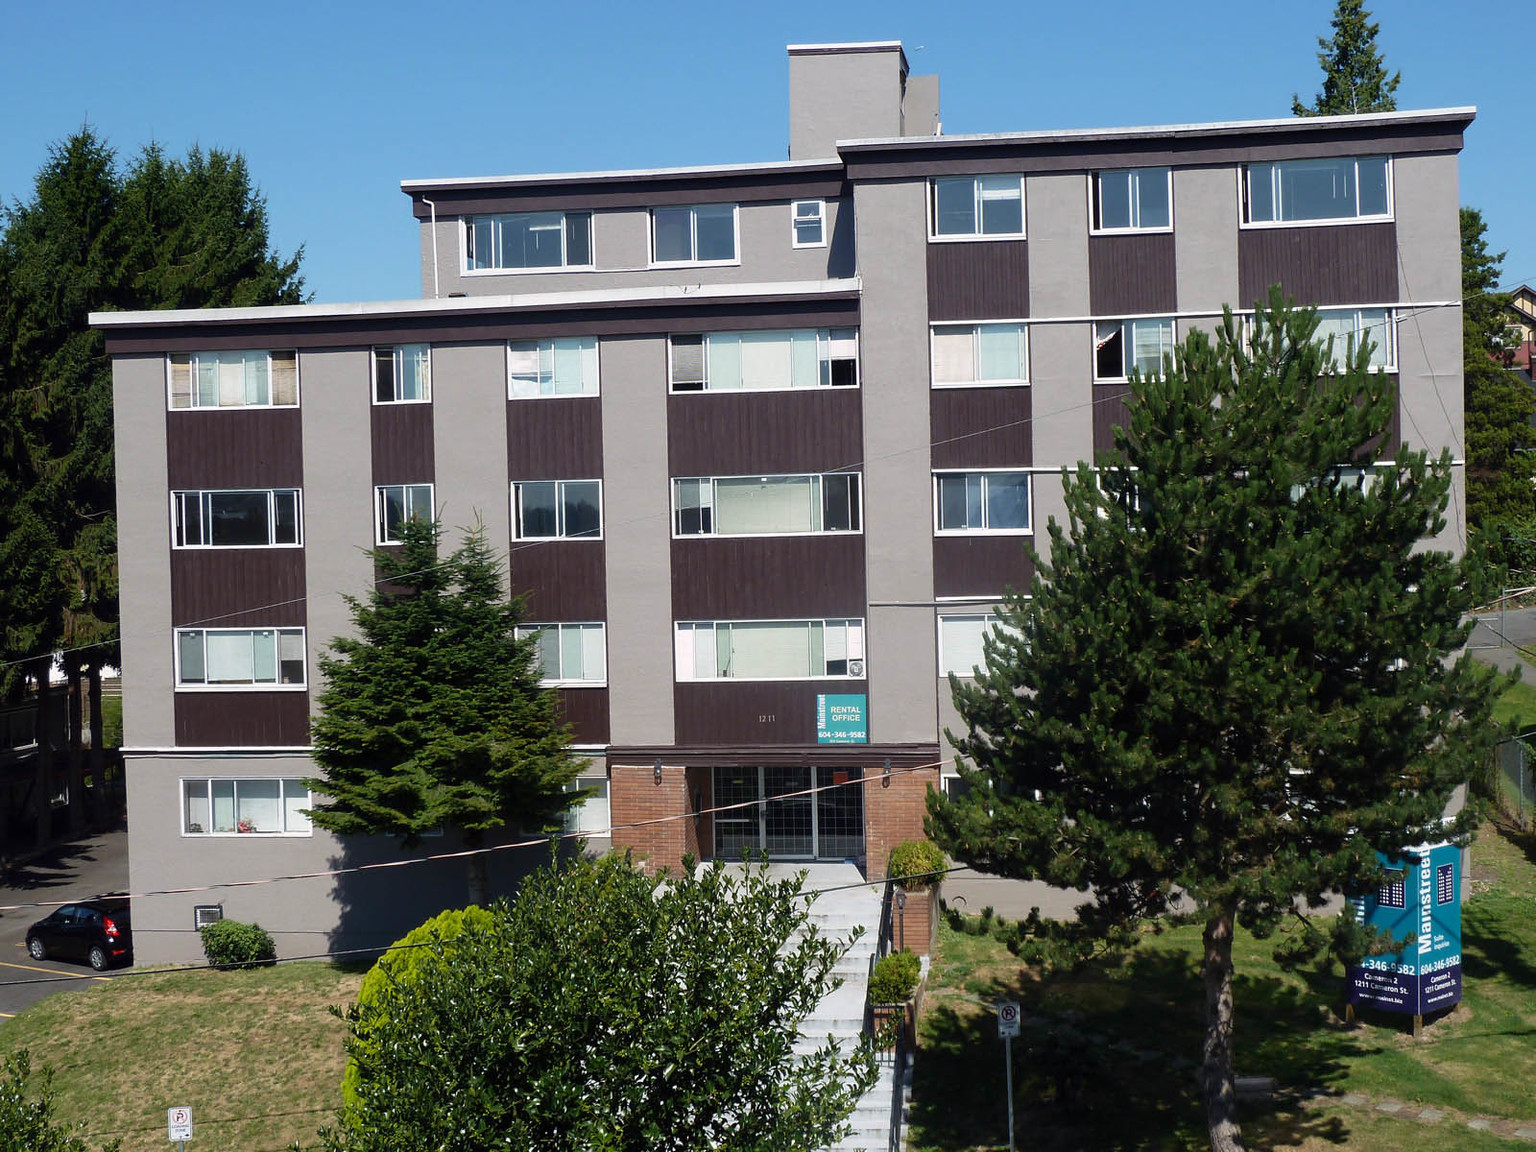 1211 Cameron St., New Westminster, BC - $1,250